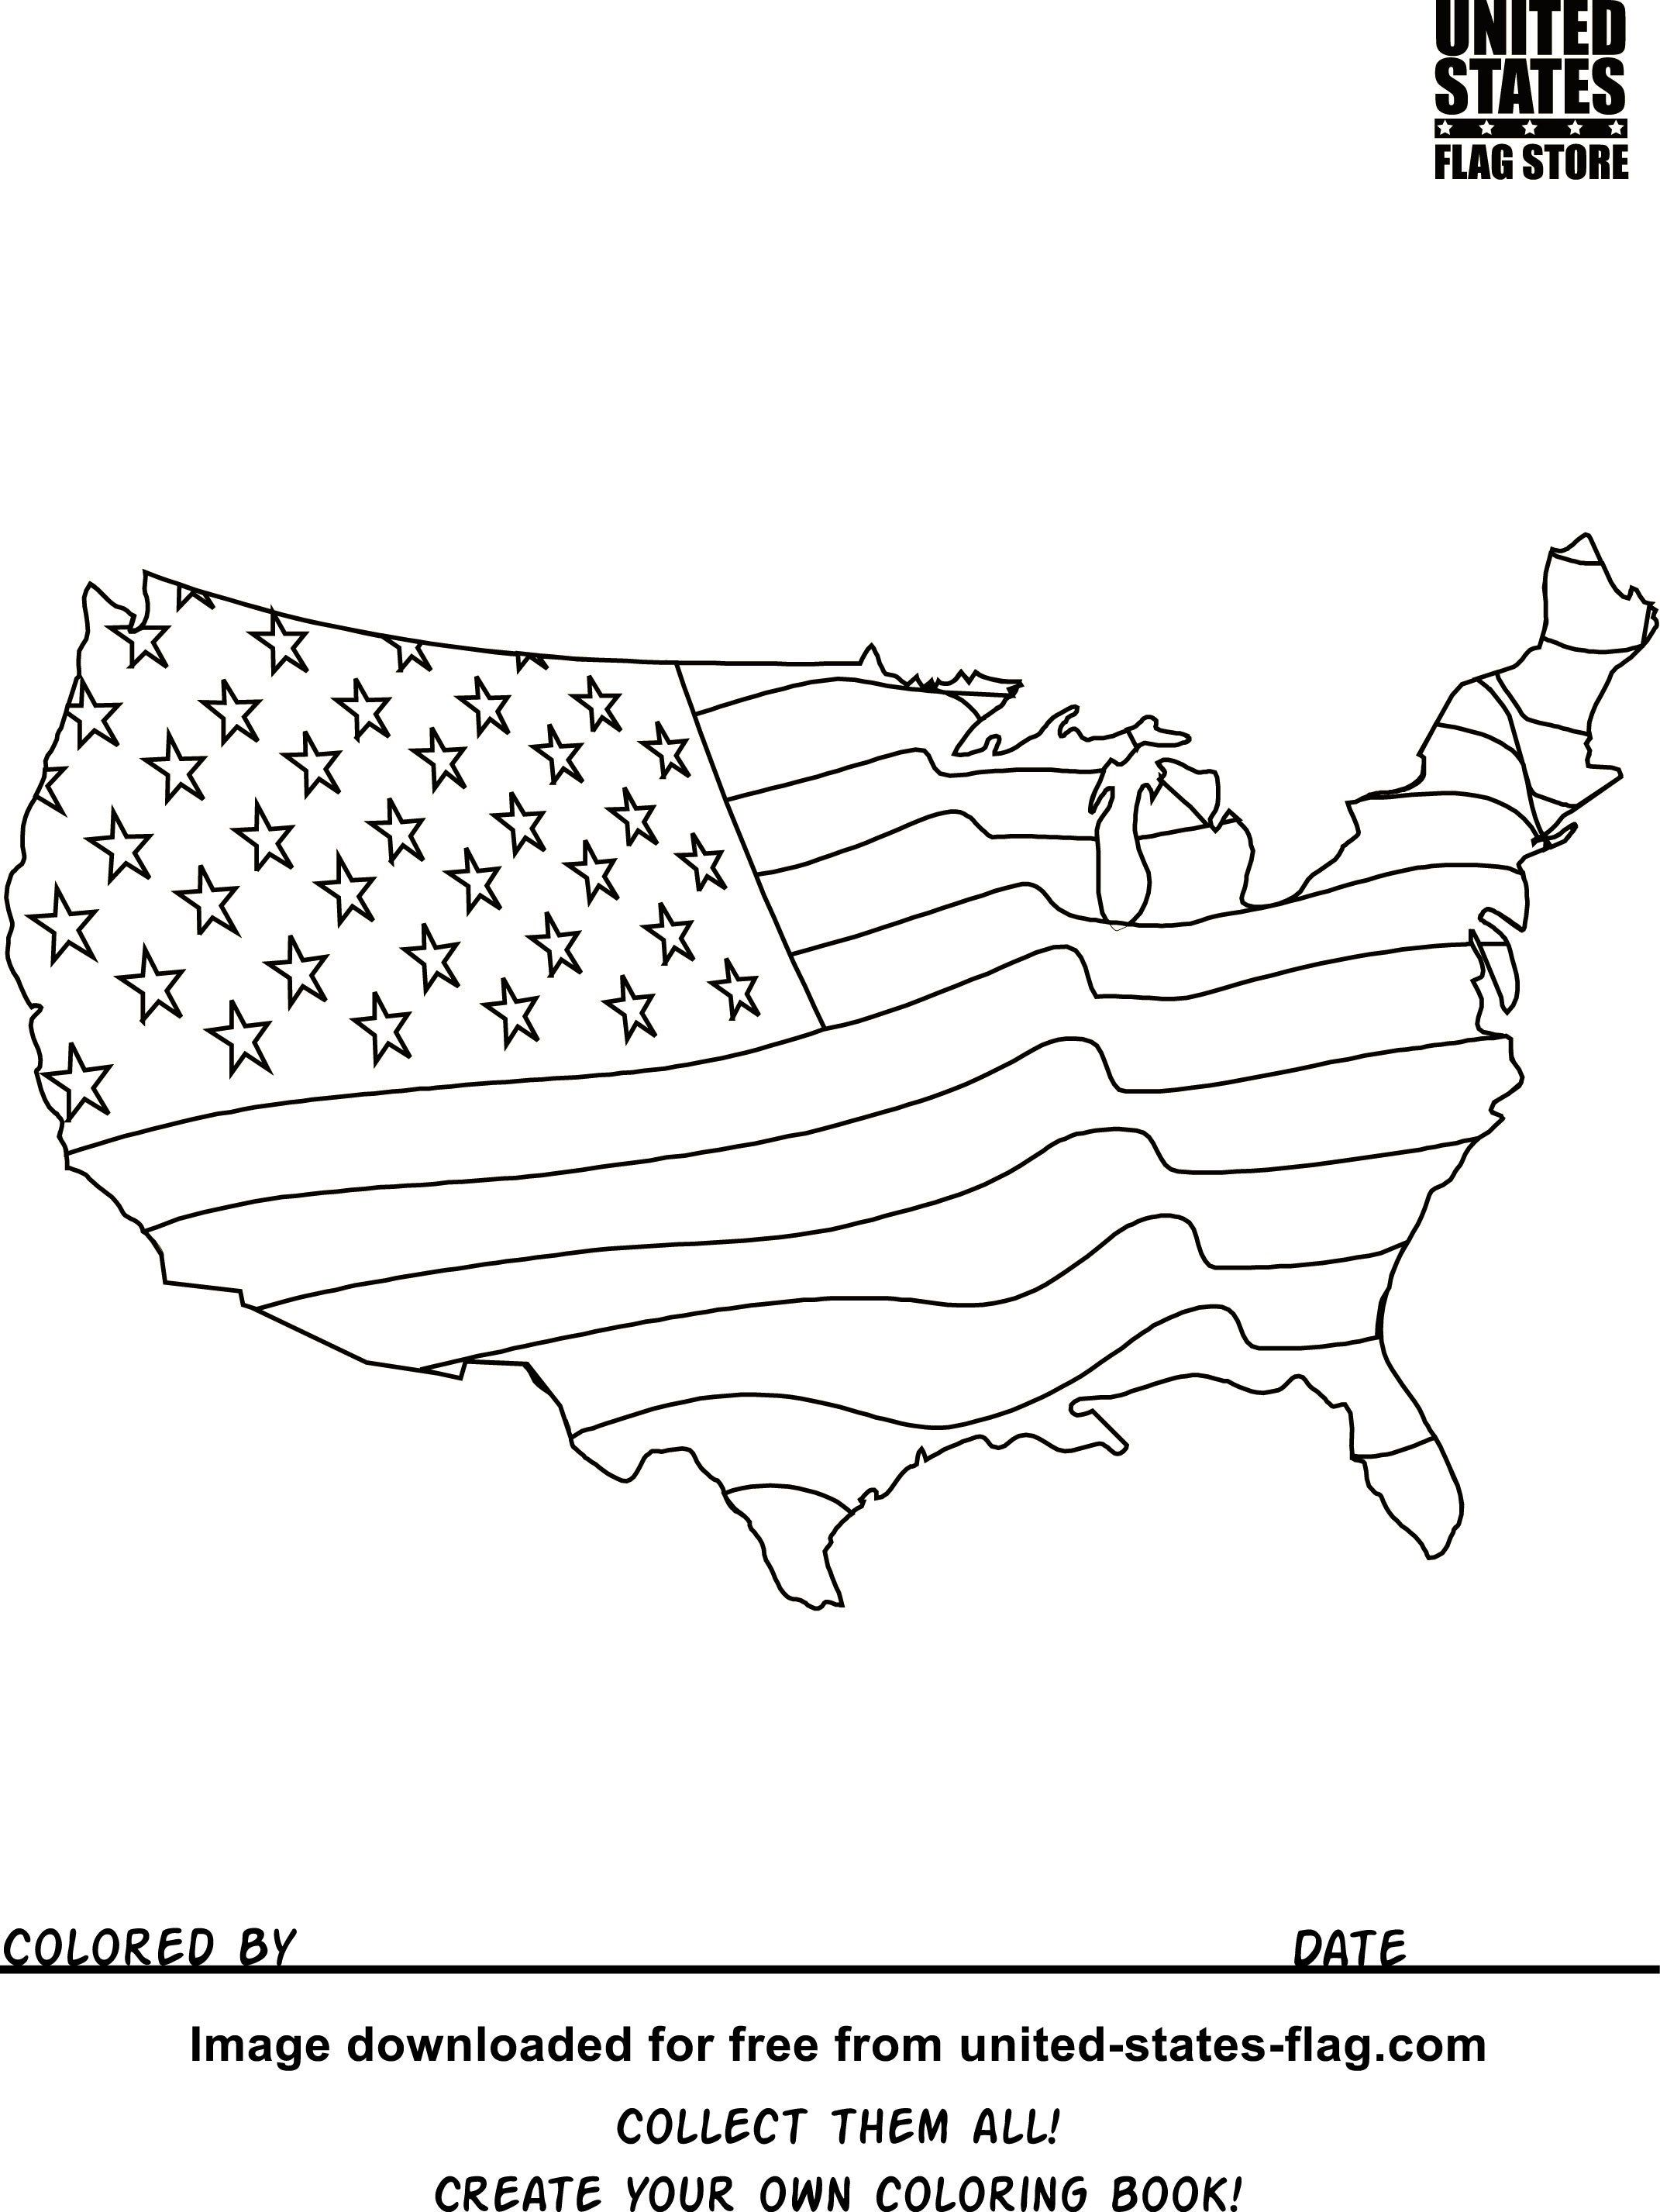 United States Flag Coloring Pages Unique Russian Flag Coloring Page American Flag Coloring Page Flag Coloring Pages American Flag Colors